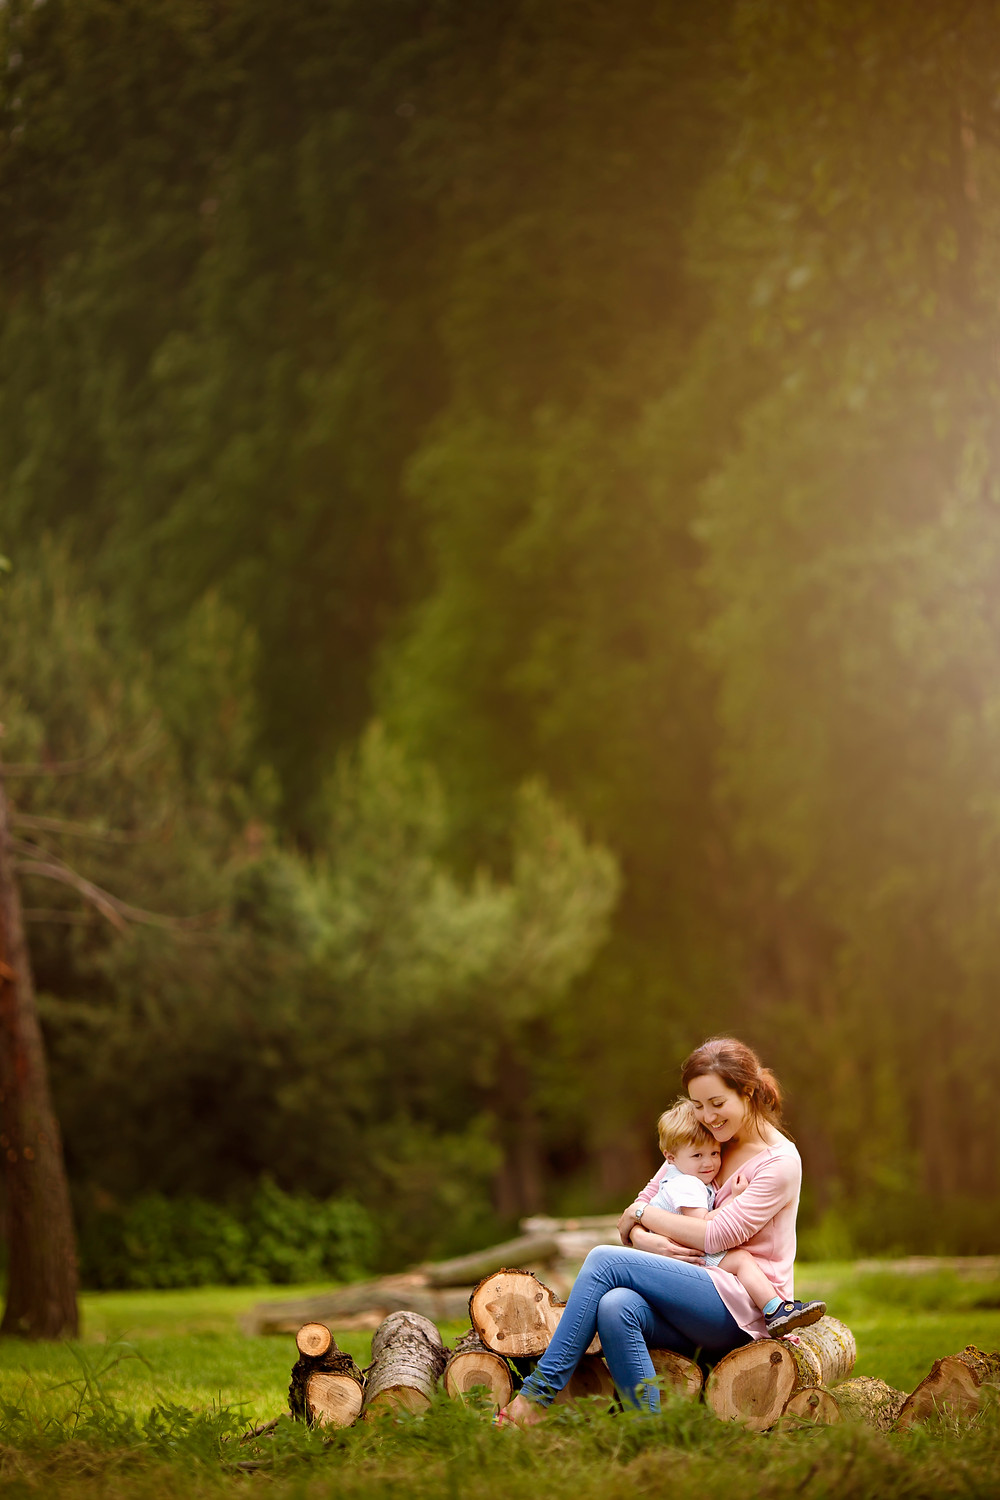 mum and son sitting on logs in the sunset,family photographer kent, family photographers, hall place, outdoor photo sessions, woodland photo sessions, photographers in kent, family photo shoots, location photo shoots